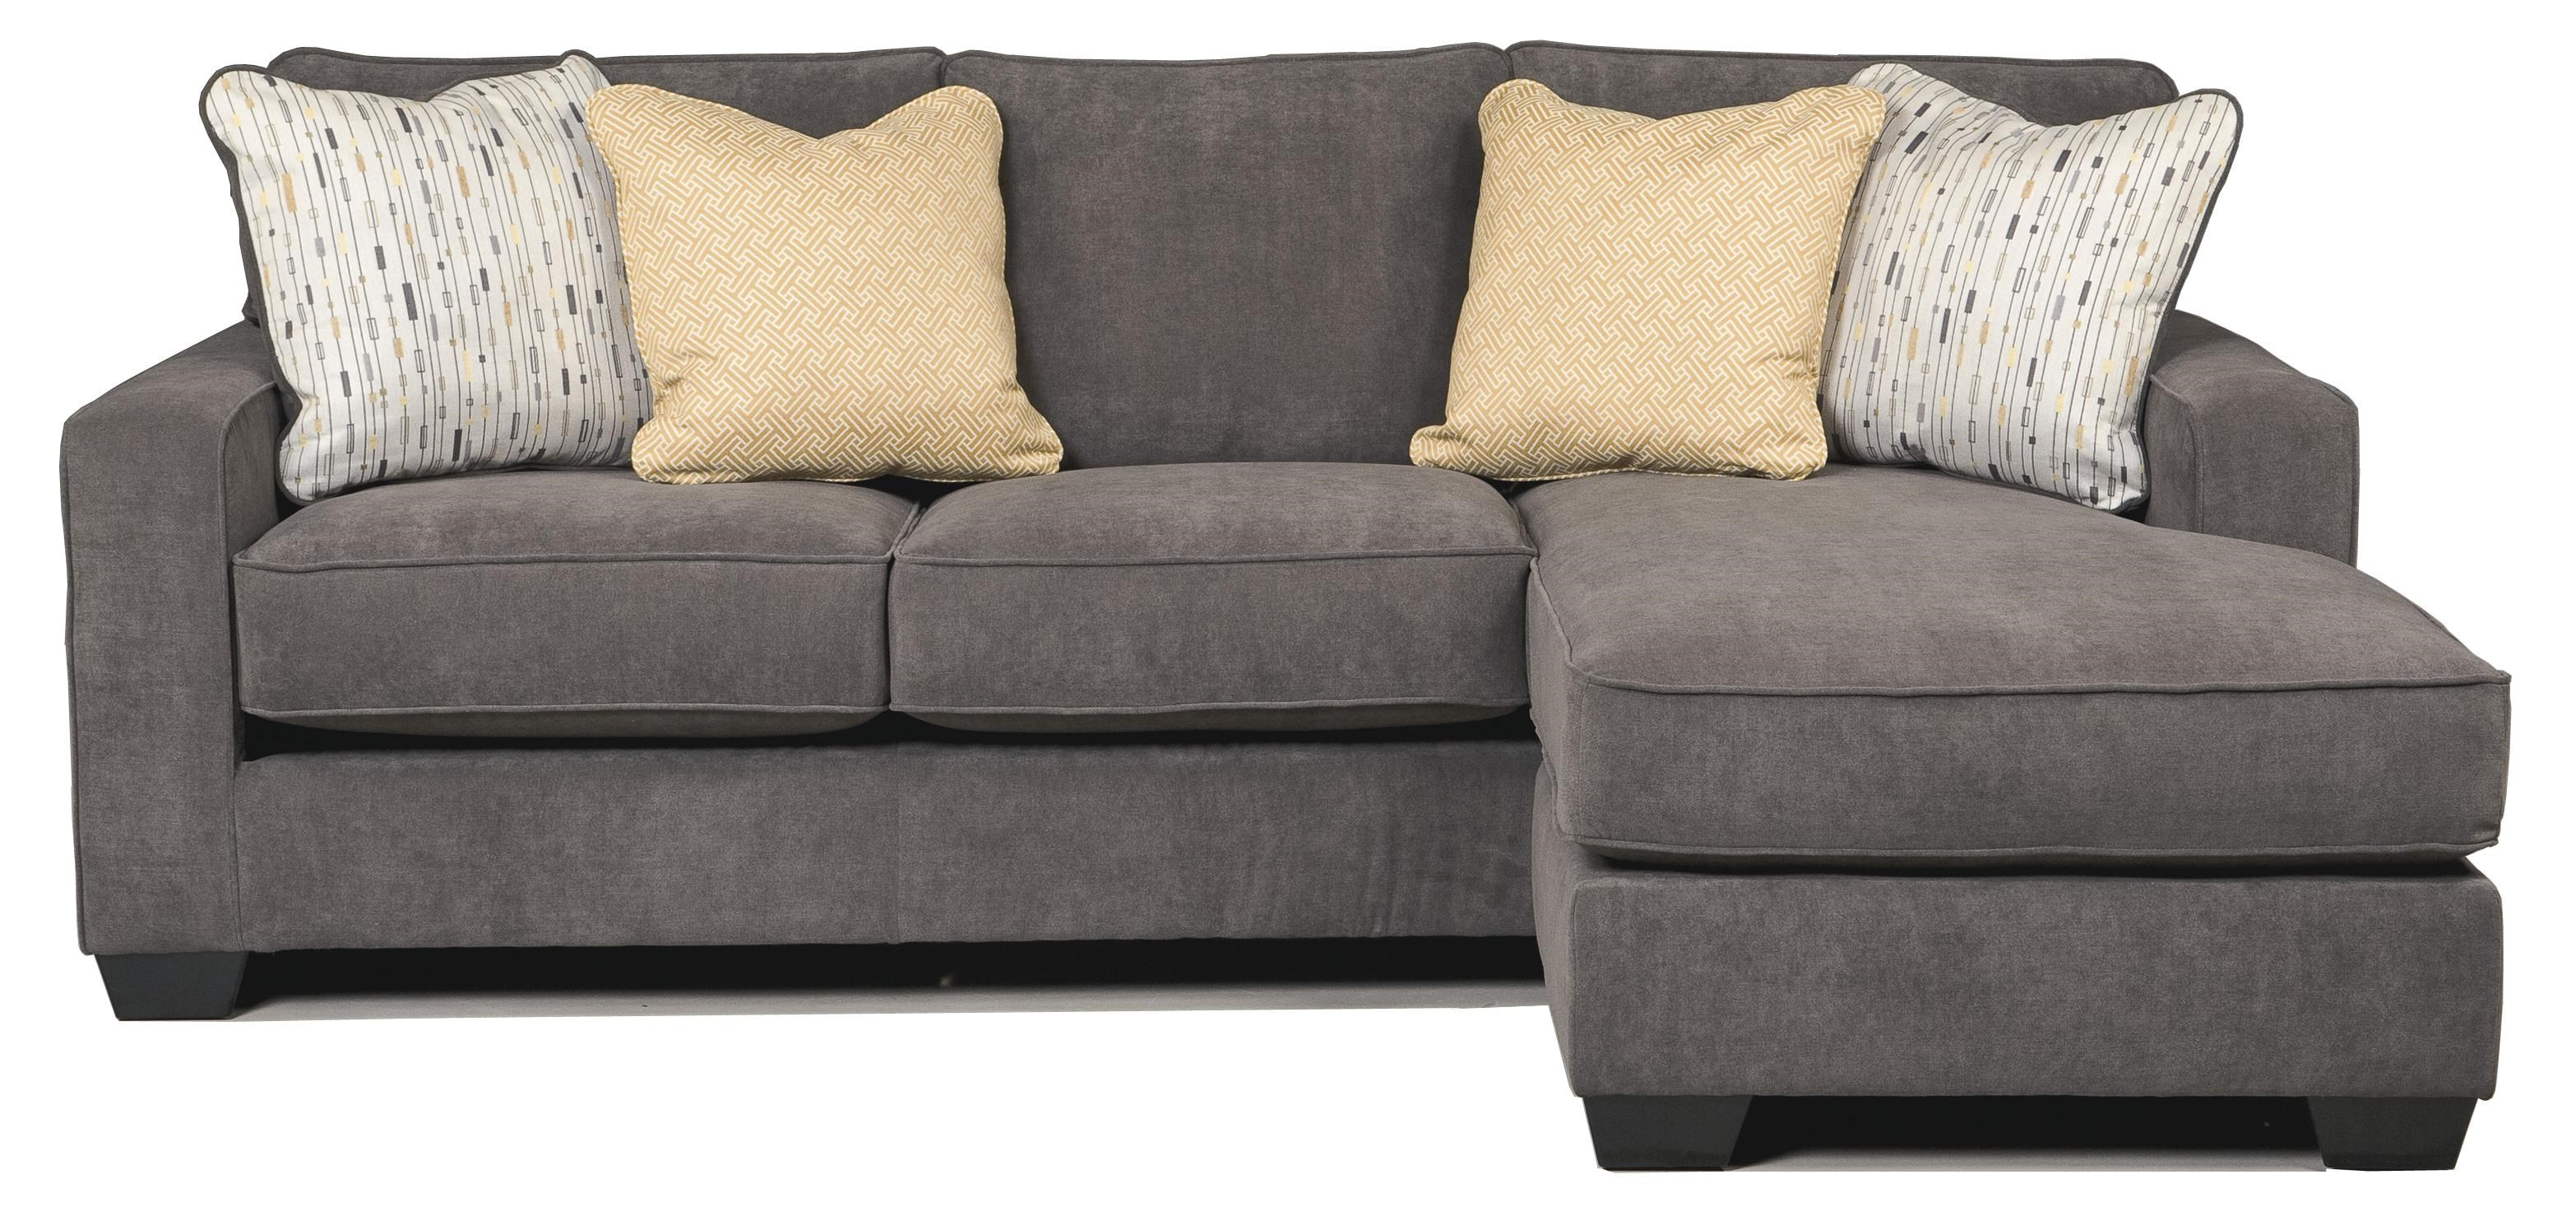 Signature Design by Ashley Hodan - Marble Contemporary Sofa Chaise with Track Arms u0026 Left or ...